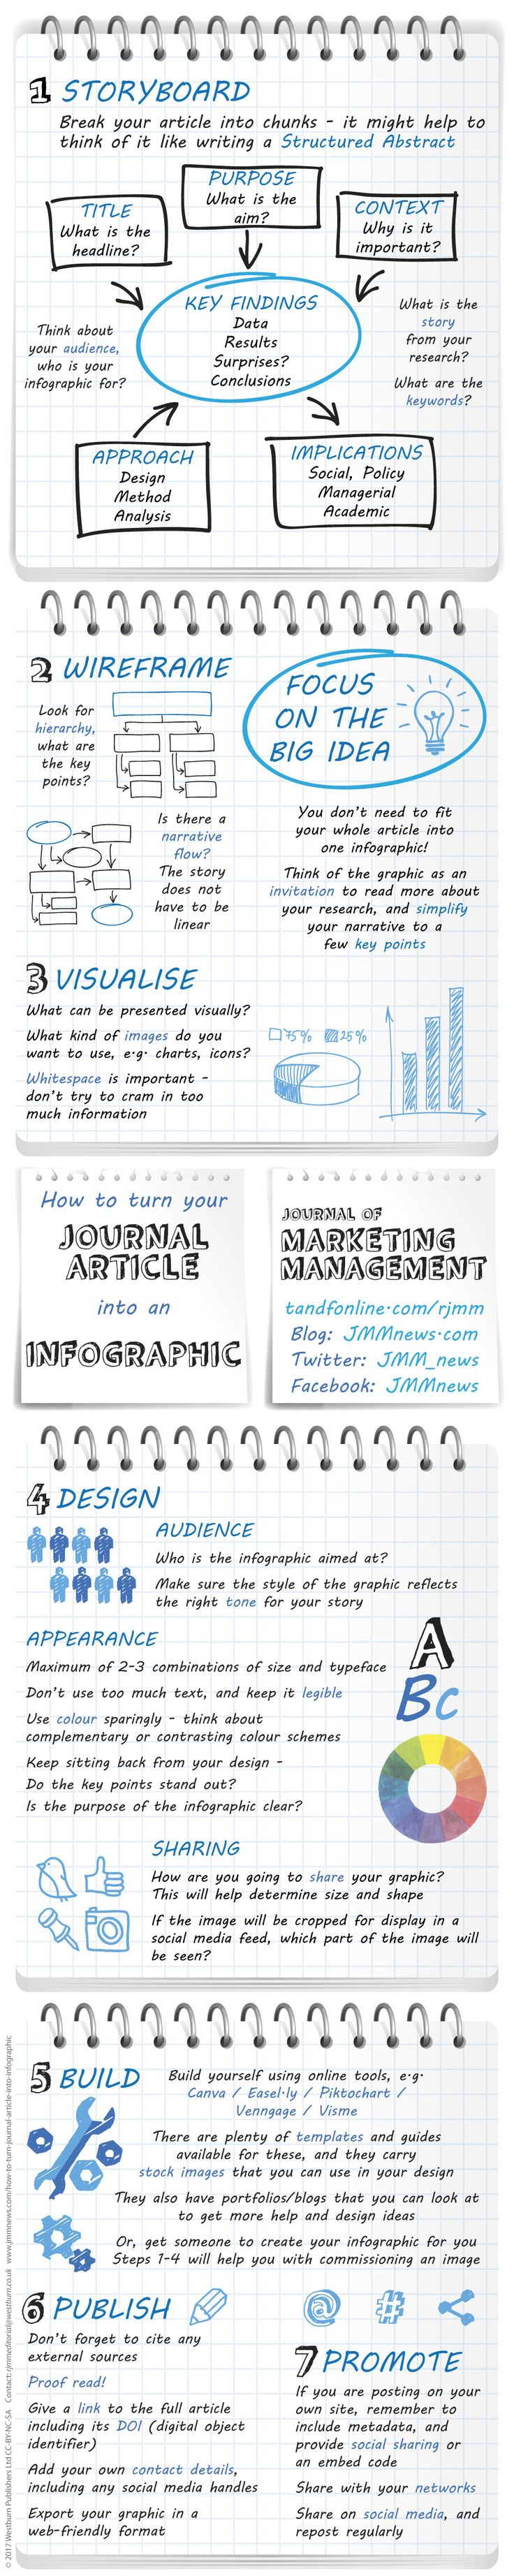 How to turn your Journal Article into an Infographic Journal of Marketing Management tandfonline.com/rjmm Blog: JMMnews.com Twitter: JMM_news Facebook: JMMnews 1 STORYBOARD Break your article into chunks - it might help to think of it like writing a Structured Abstract TITLE: What is the headline? PURPOSE: What is the aim? CONTEXT: Why is it important? APPROACH: Design, Method, Analysis KEY FINDINGS: Data, Results, Surprises? Conclusions IMPLICATIONS: Social, Policy, Managerial, Academic…